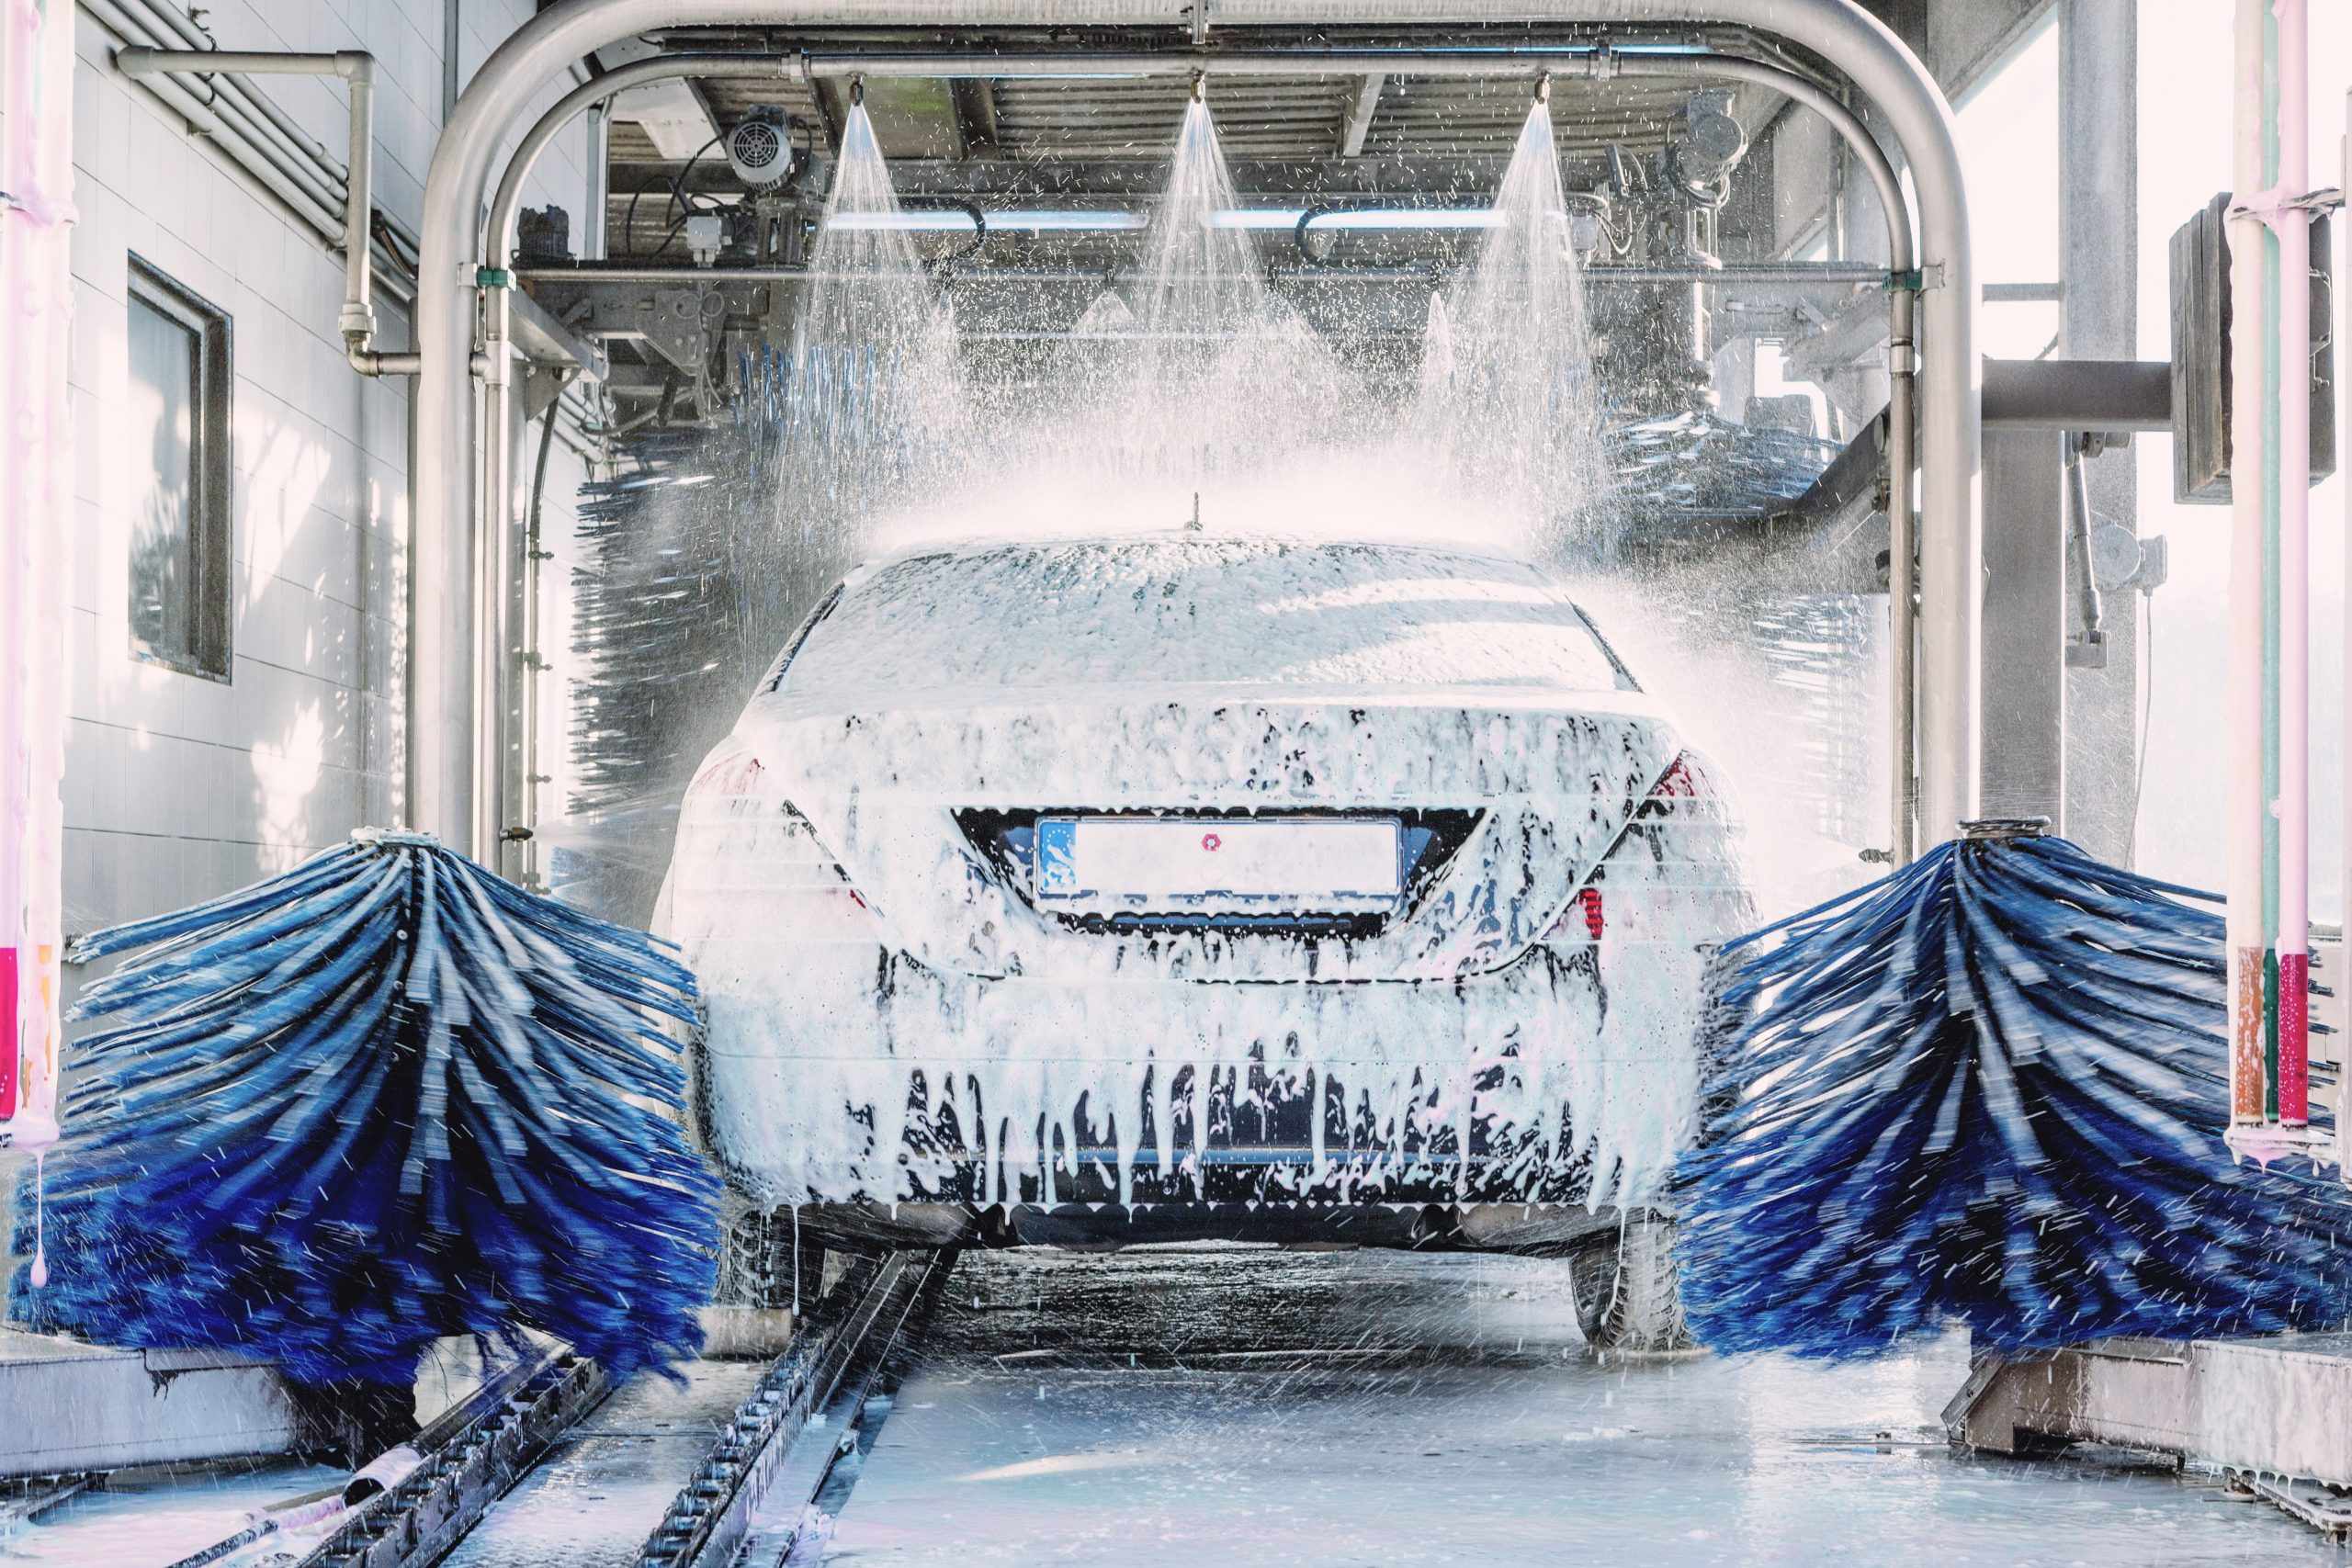 Automated car washes allowed to re-open from 12th April